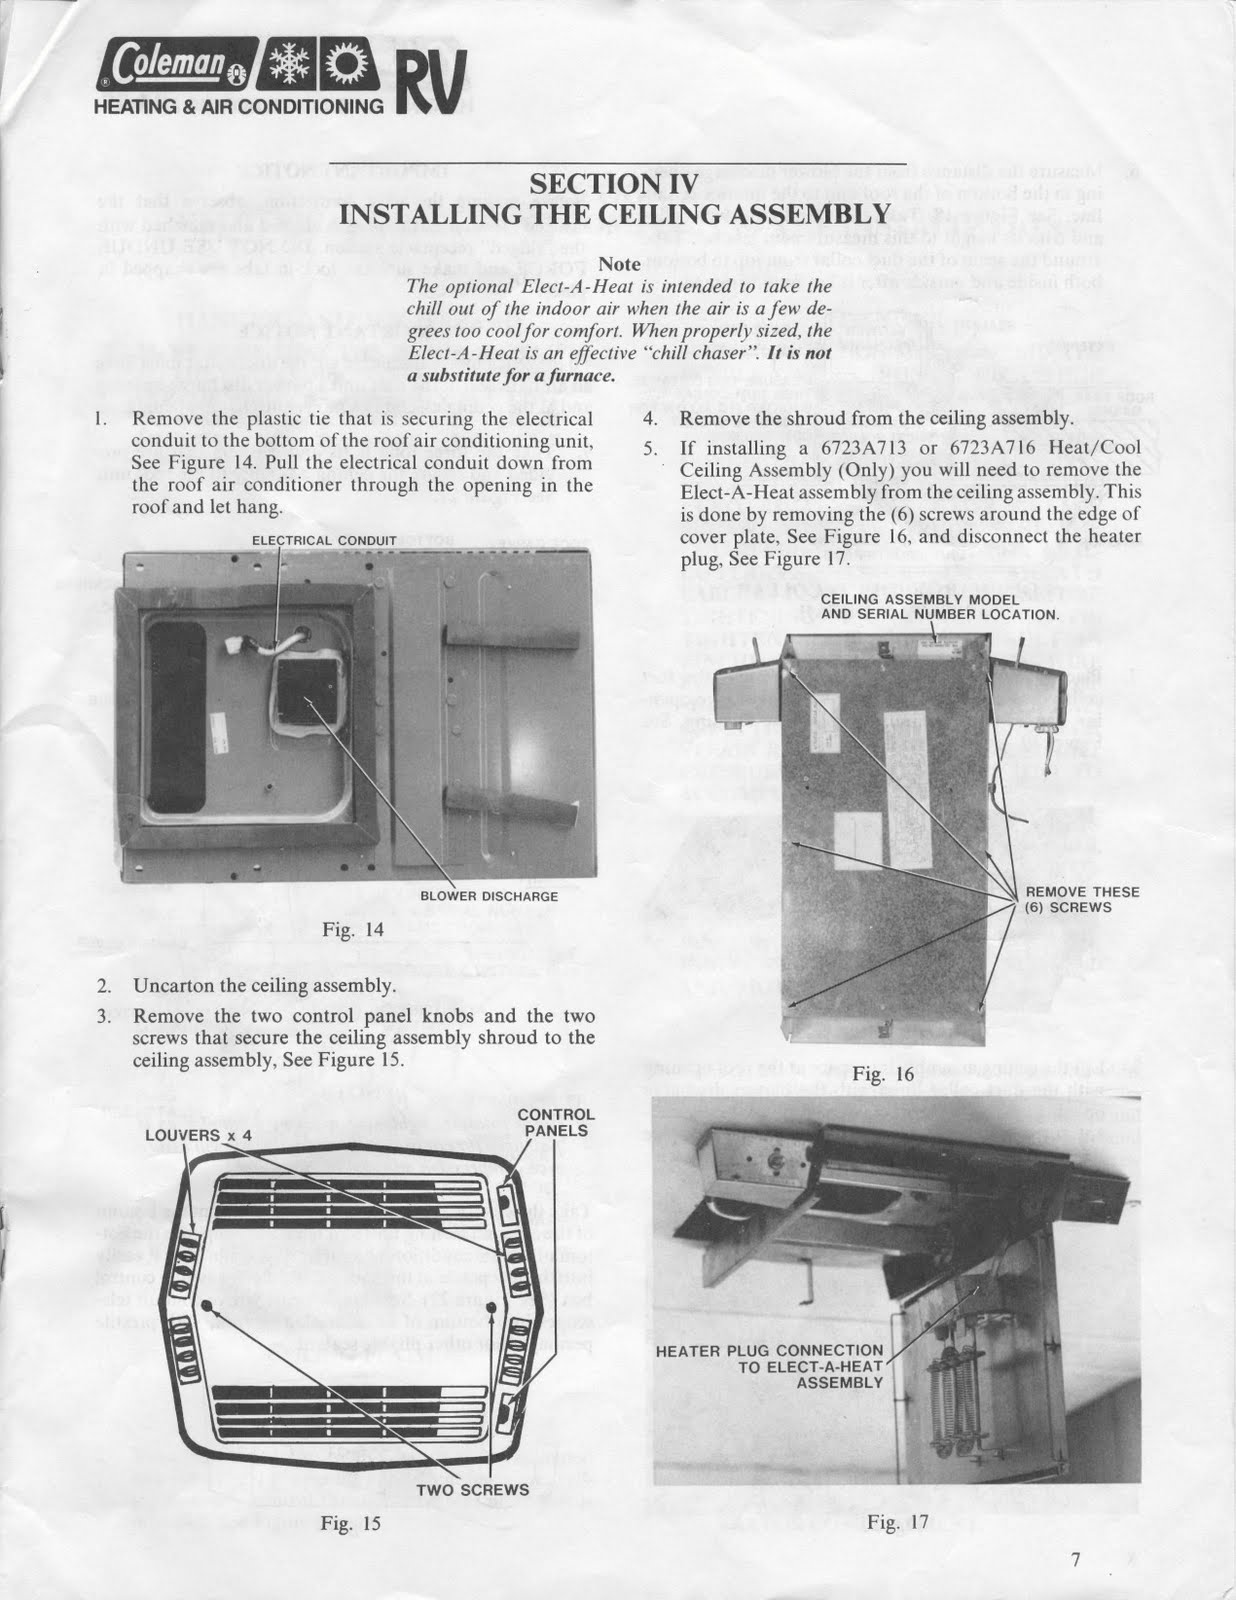 coleman rv air conditioner wiring diagram what is a space 1983 fleetwood pace arrow owners manuals: conditioners mach 1 & 3- march 1el 3 el